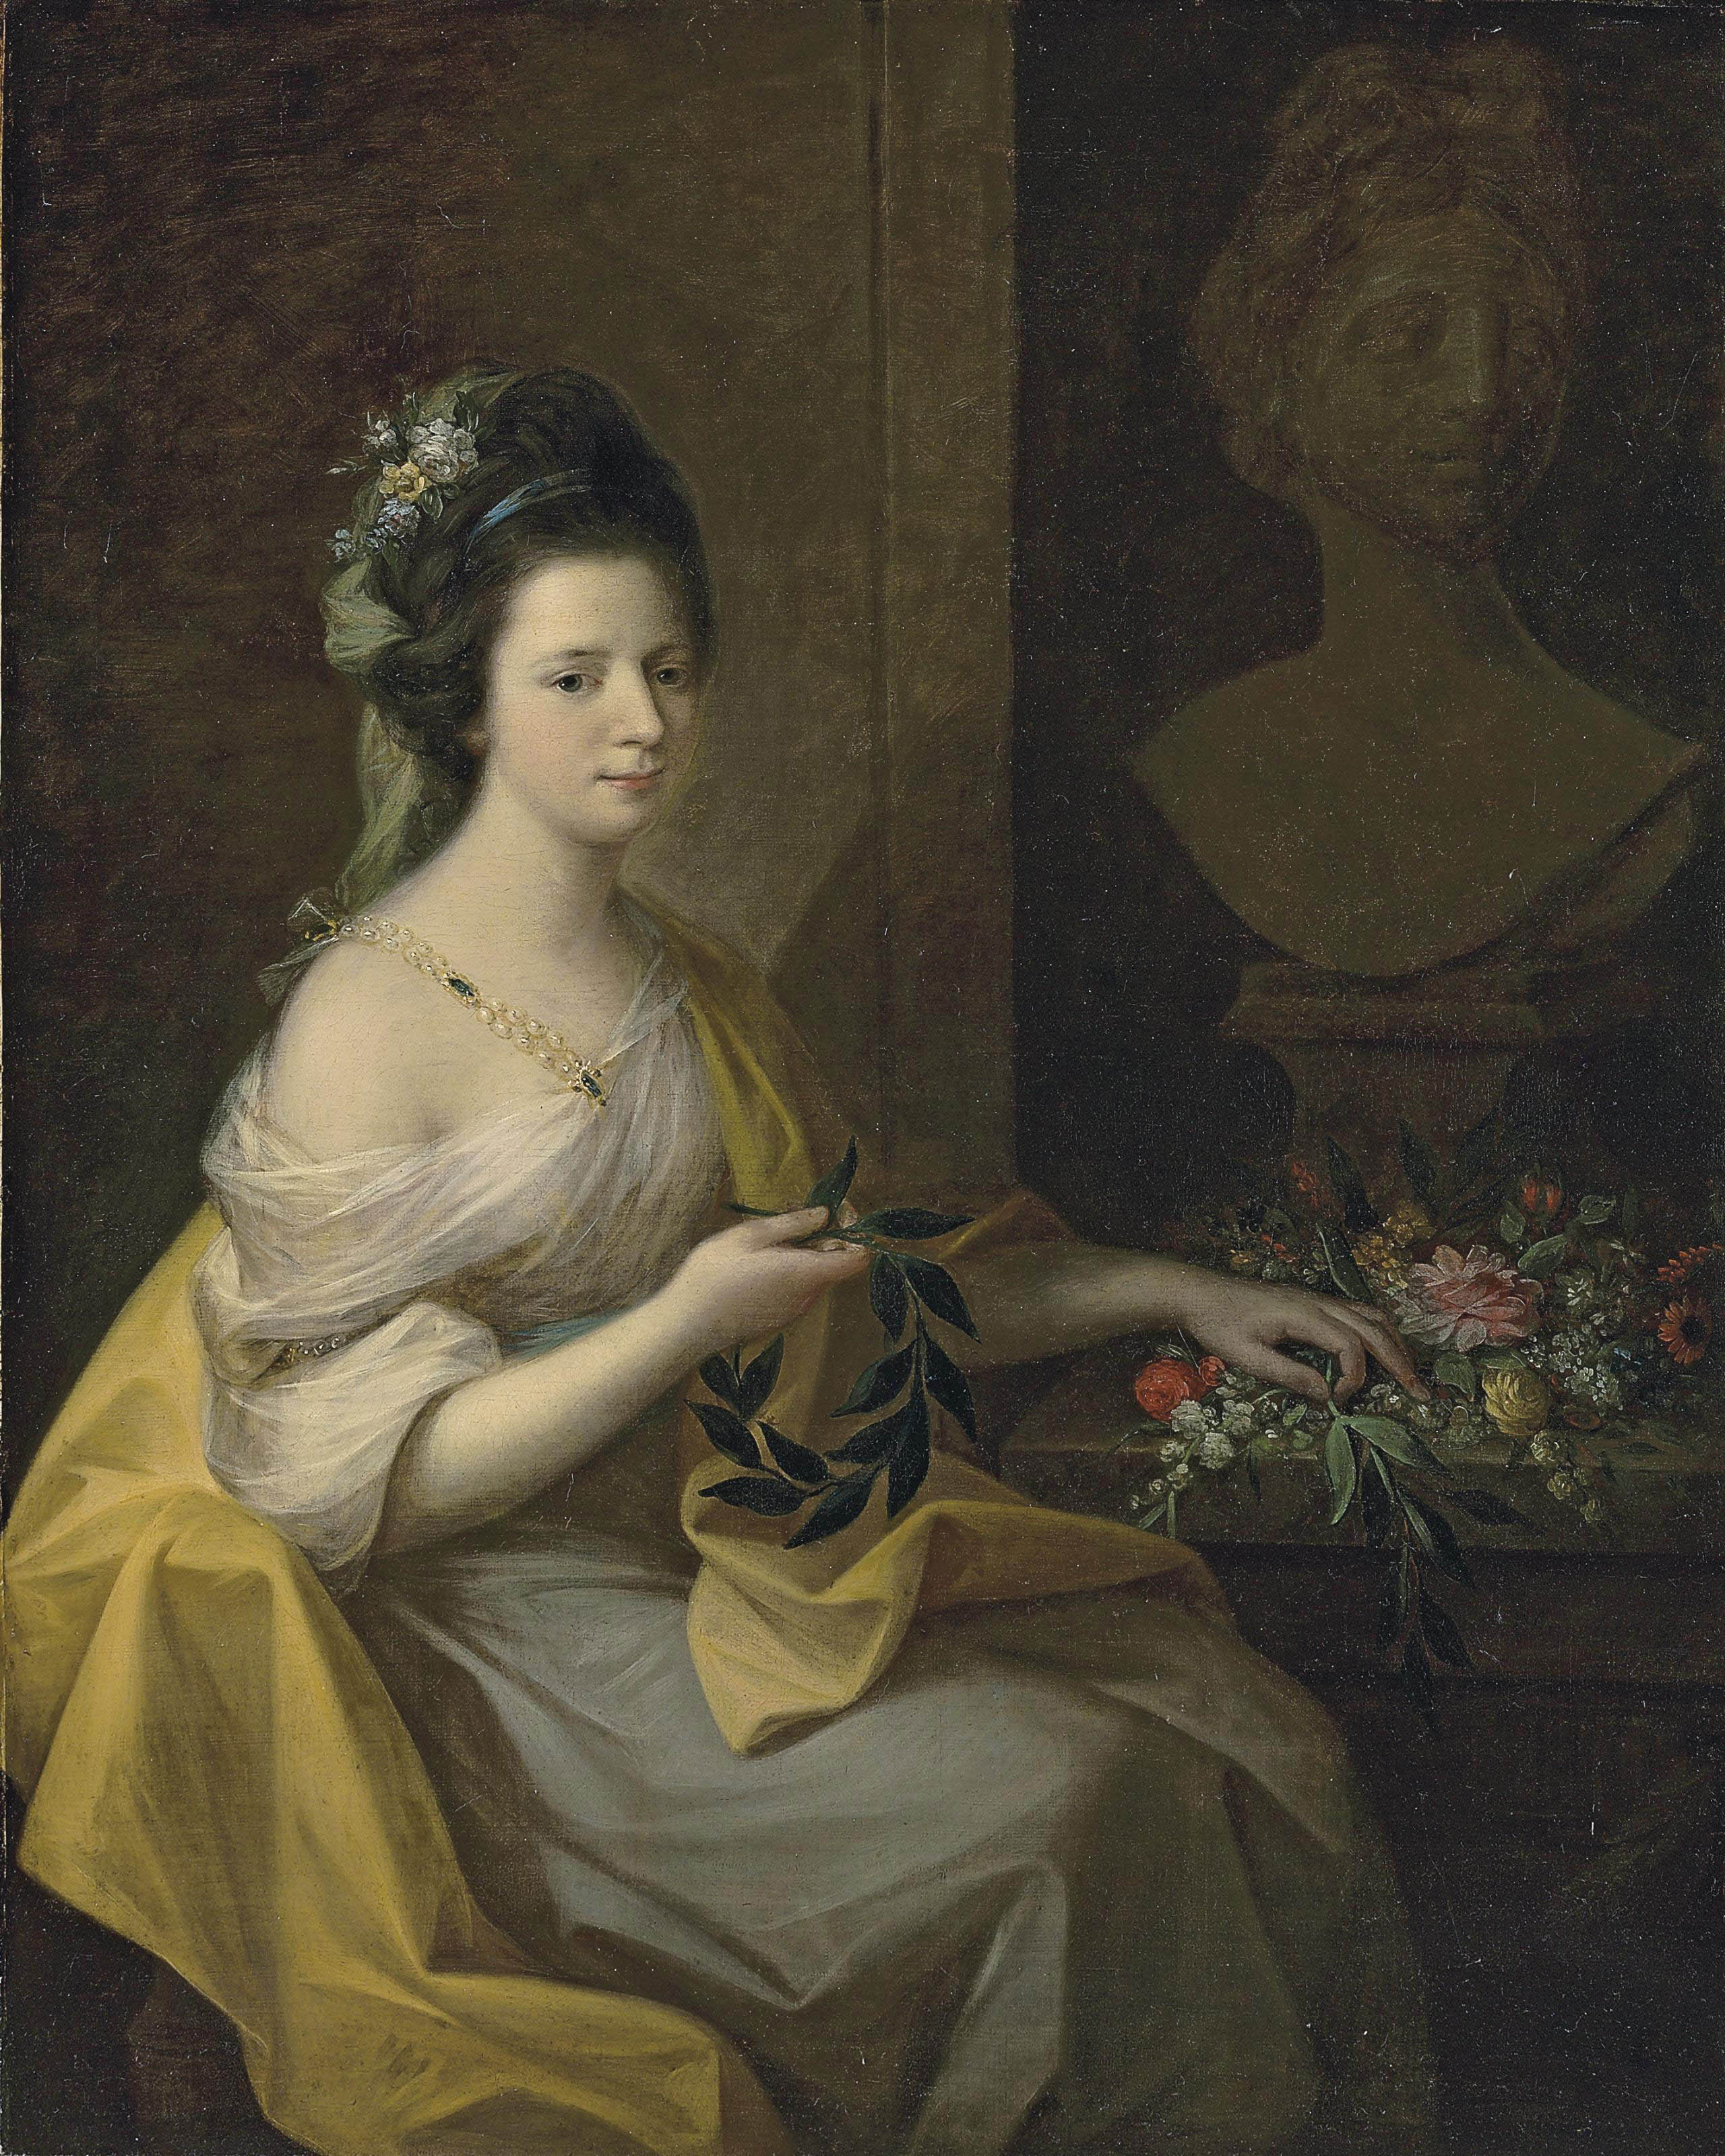 Portrait of lady, believed to be Elizabeth Muncaster, née Dale, three-quarter-length, in a dress with a pearl clasp and a yellow mantle, flowers in her hair, holding a laurel wreath, before a bust of the Apollo Belvedere